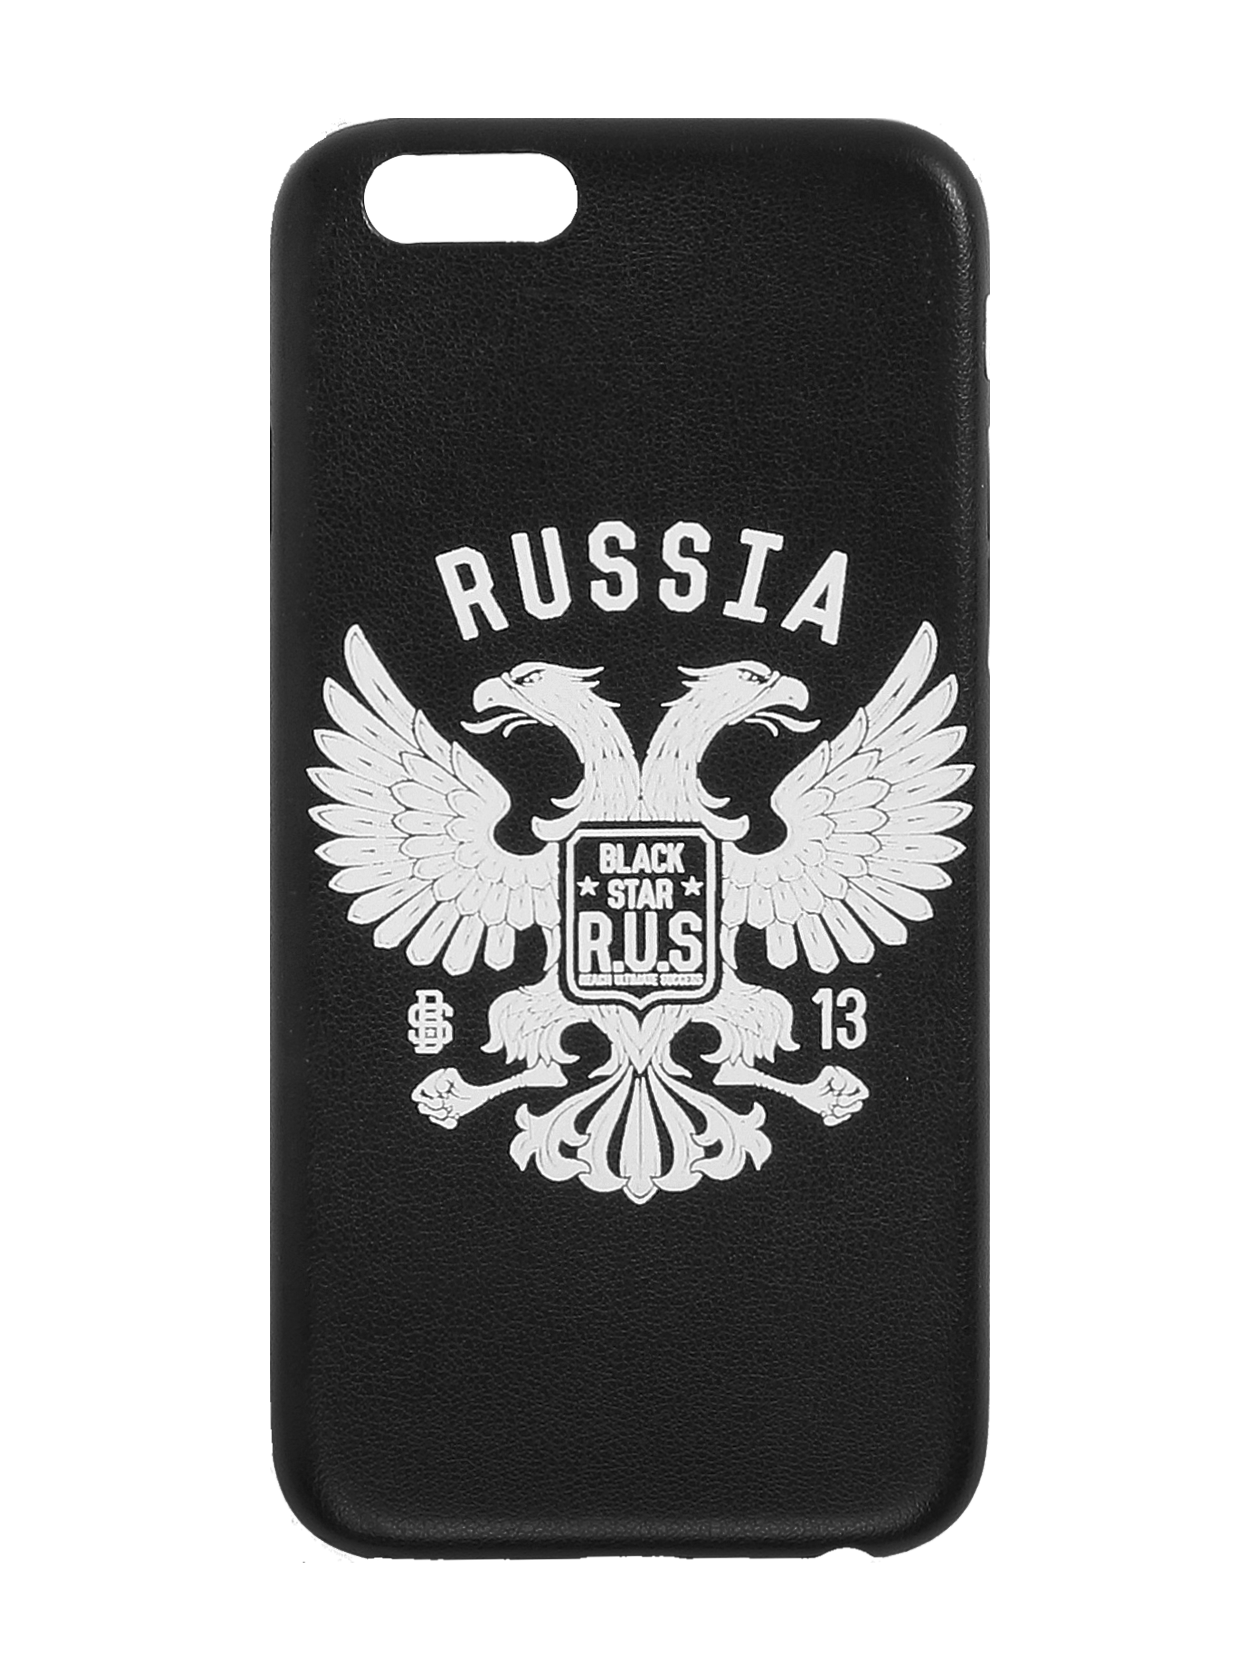 IPHONE CASE 5/6/6+ GERBIphone plastic hard case by Black Star Wear. Printed wih two-headed eagle. Solid protection and direct access to all device features.<br><br>size: 6<br>color: Black<br>gender: unisex